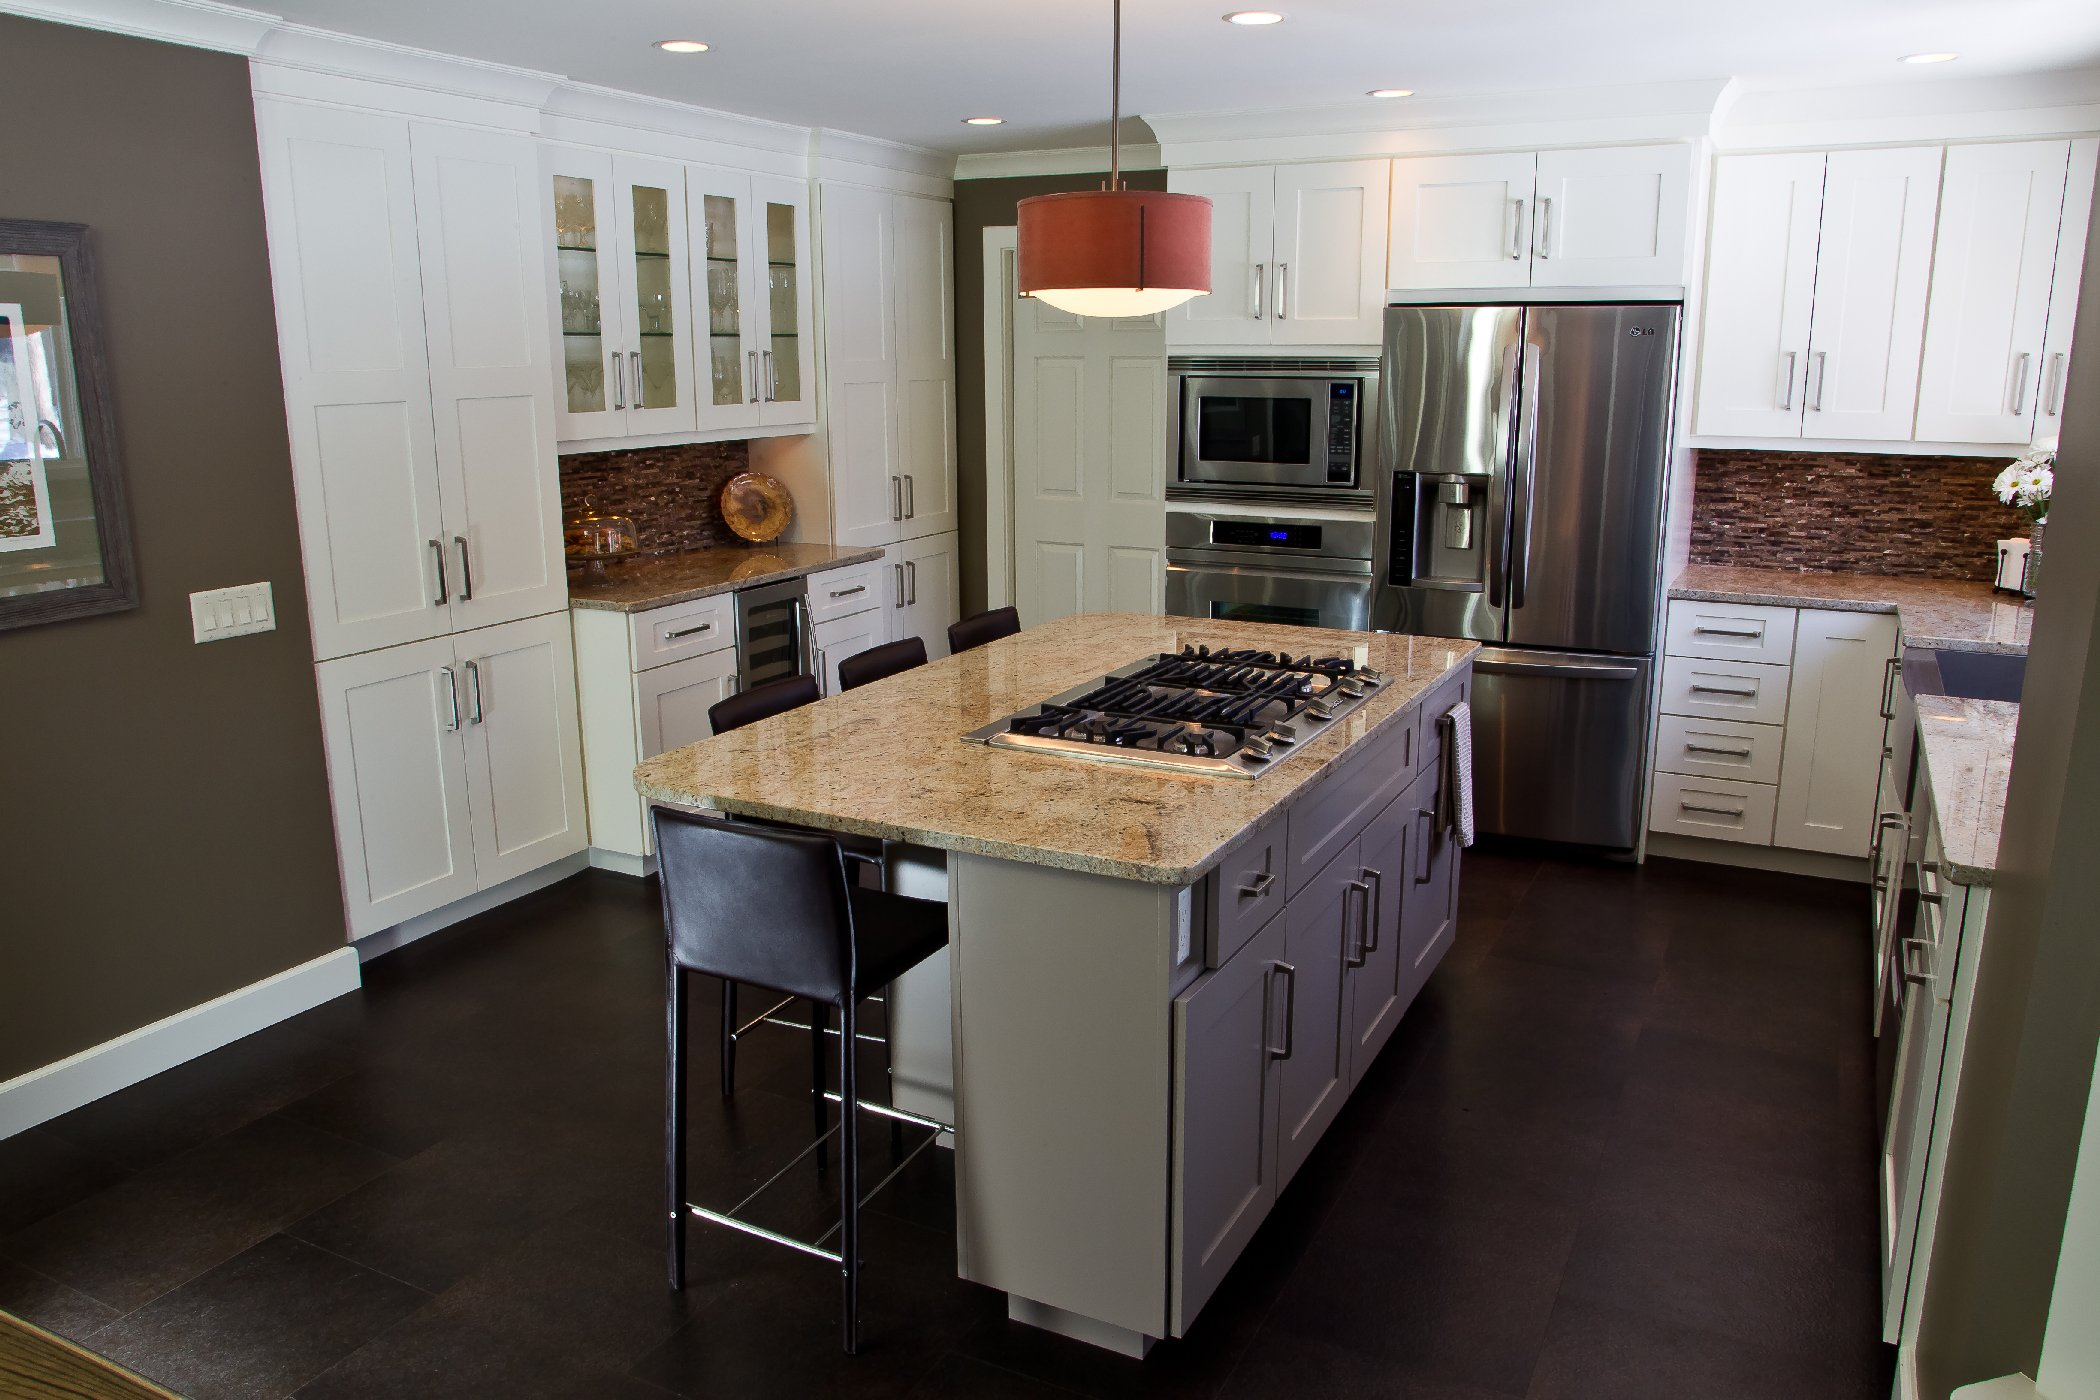 Kitchen Remodeling and Design, kitchen remodel, large pantry towers, glass kitchen cabinets, kitchen bar cabinets, white cabinets, built-in double oven